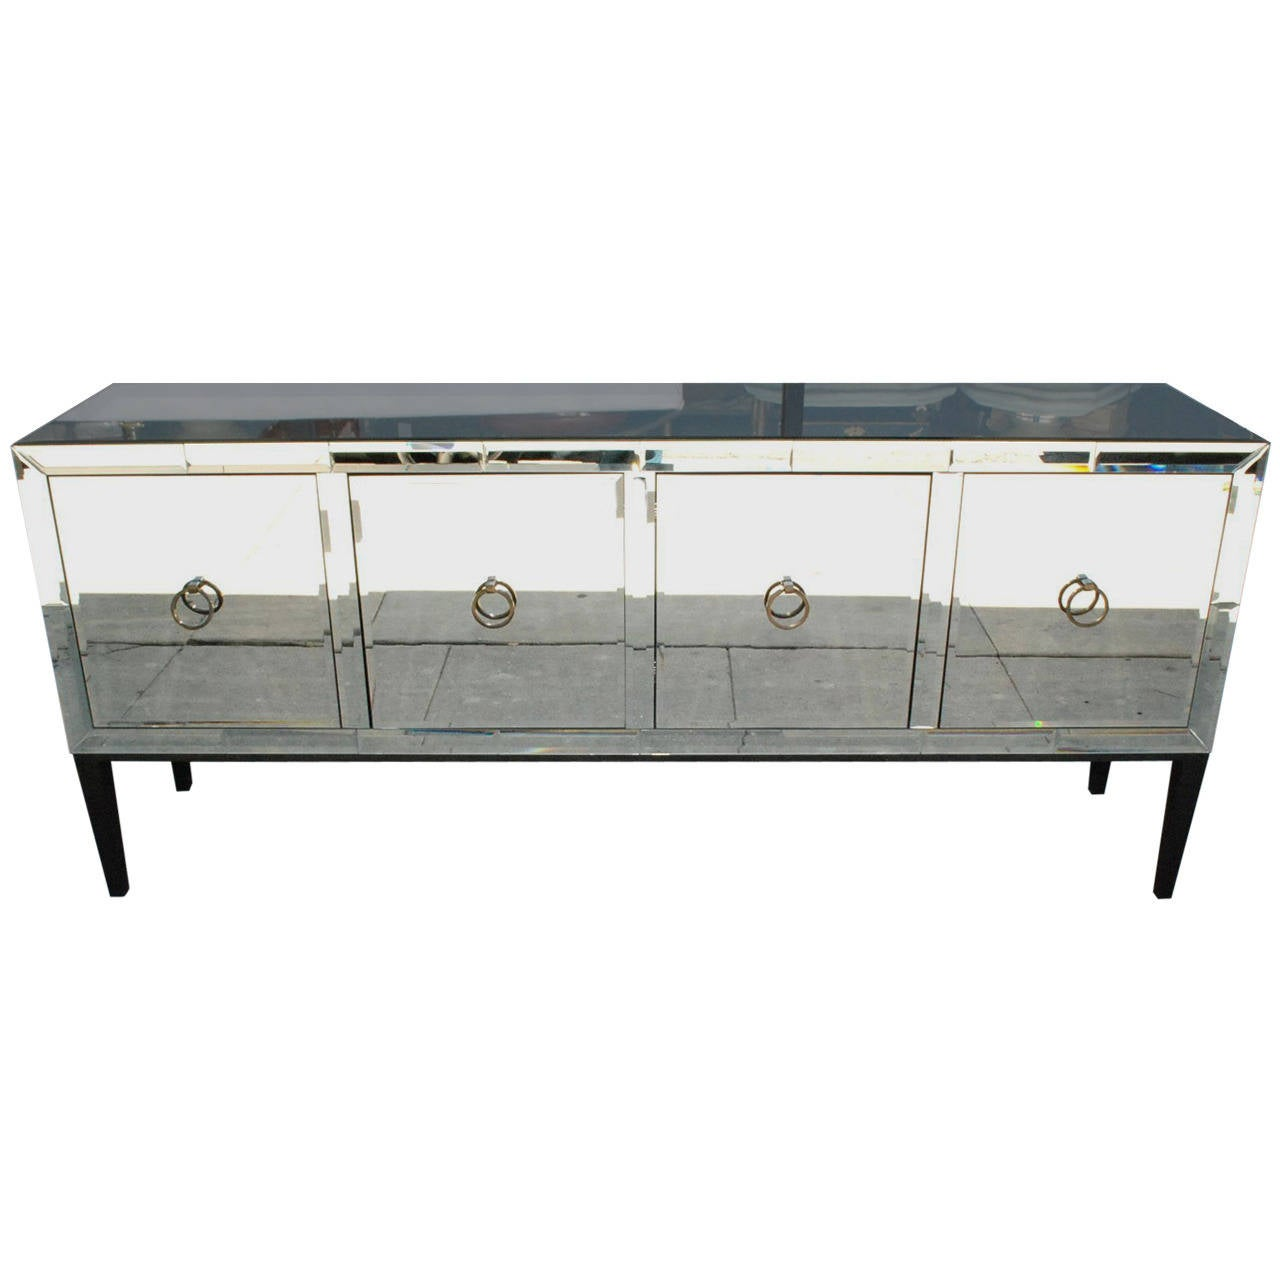 mirrored credenza or buffet for sale at stdibs - mirrored credenza or buffet